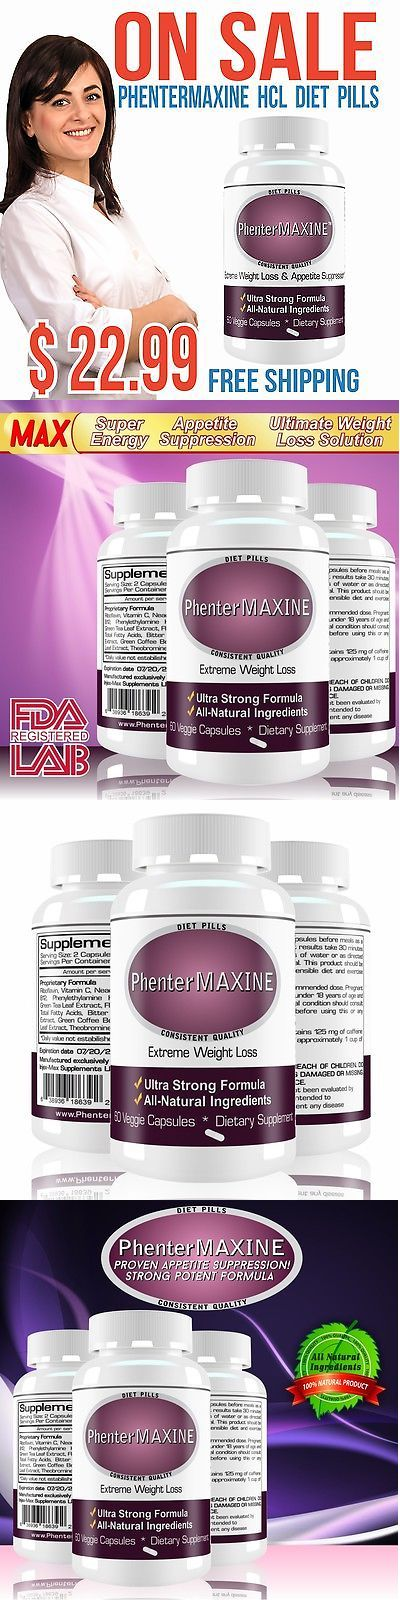 Appetite Control Suppressants: Phentermaxine Pharmaceutical Grade Quality Extra Strong Supplement, 60 Pills BUY IT NOW ONLY: $32.22